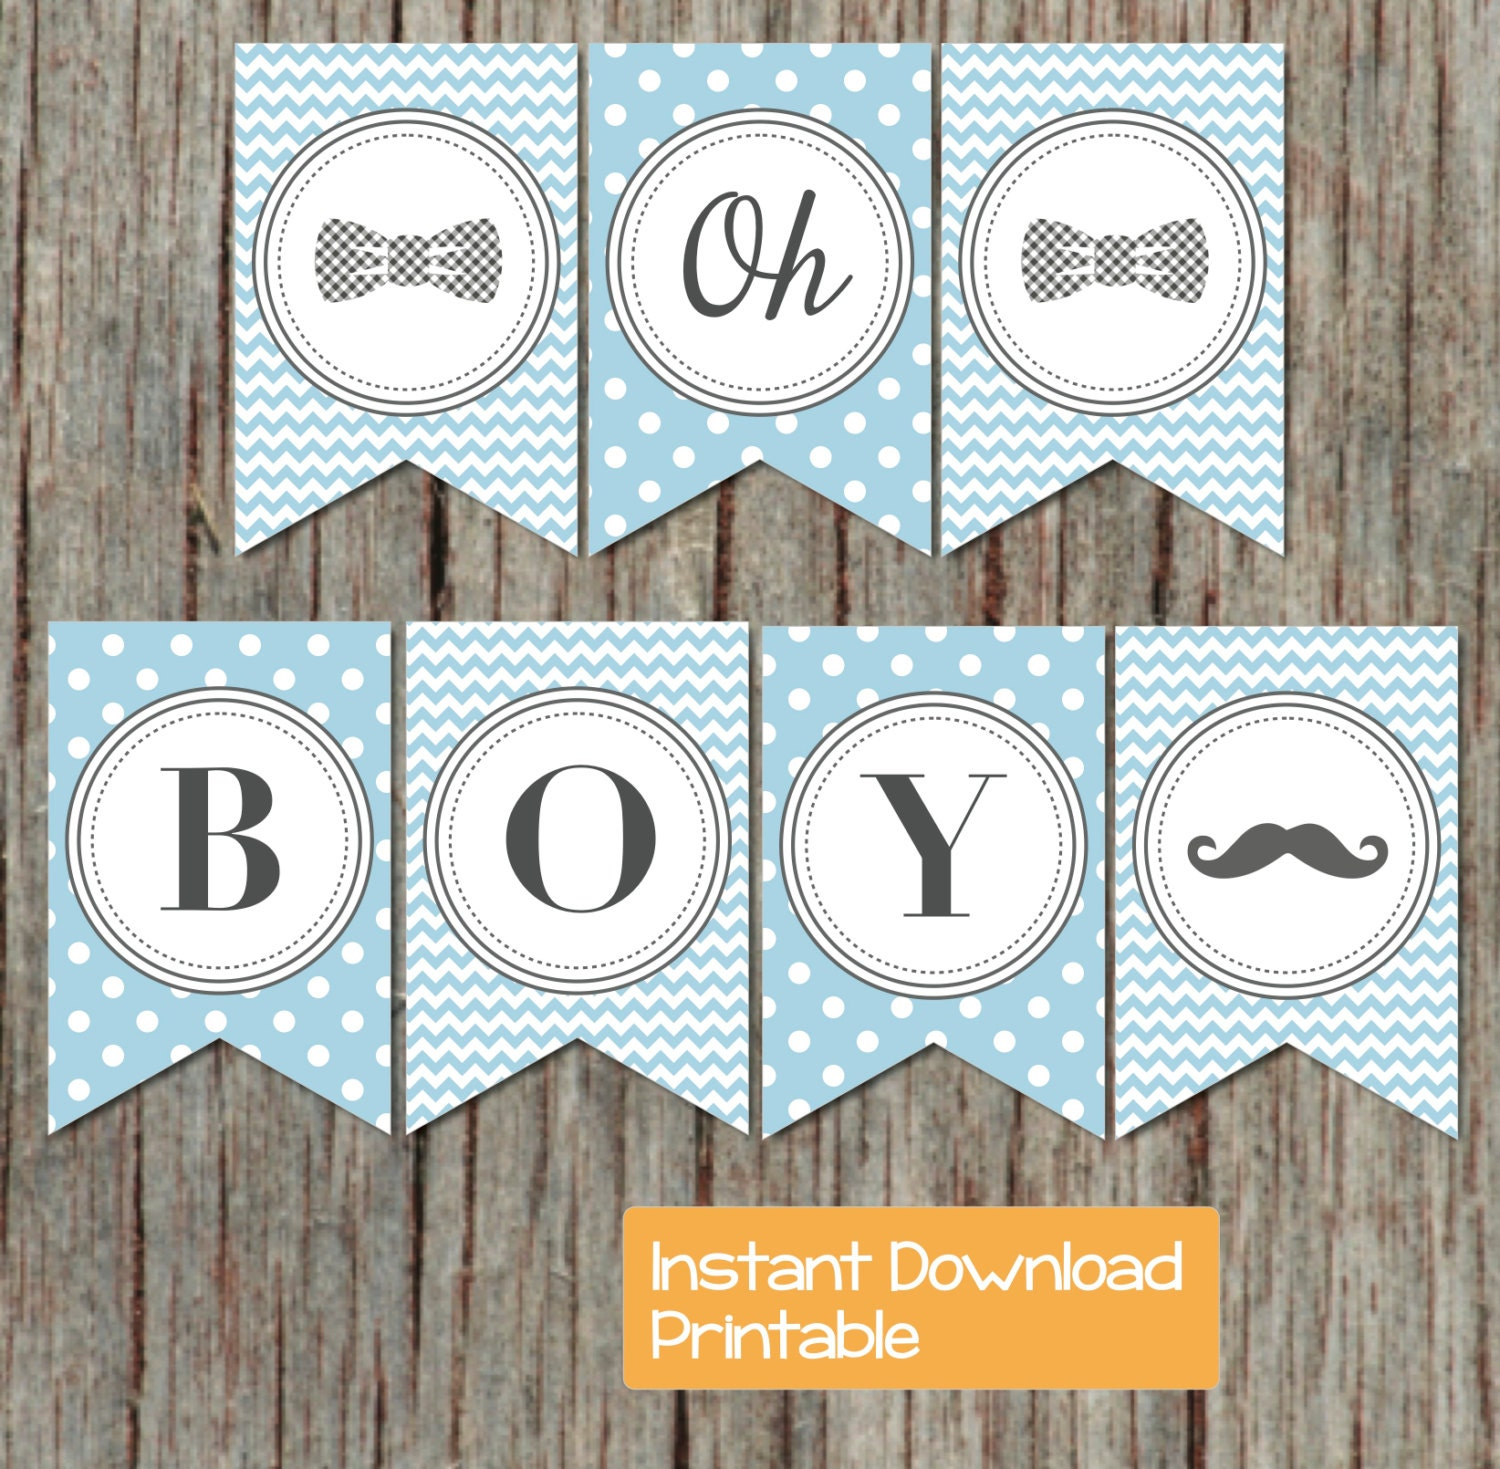 Boy oh boy printable baby shower banner powder blue grey for Baby shower decoration templates